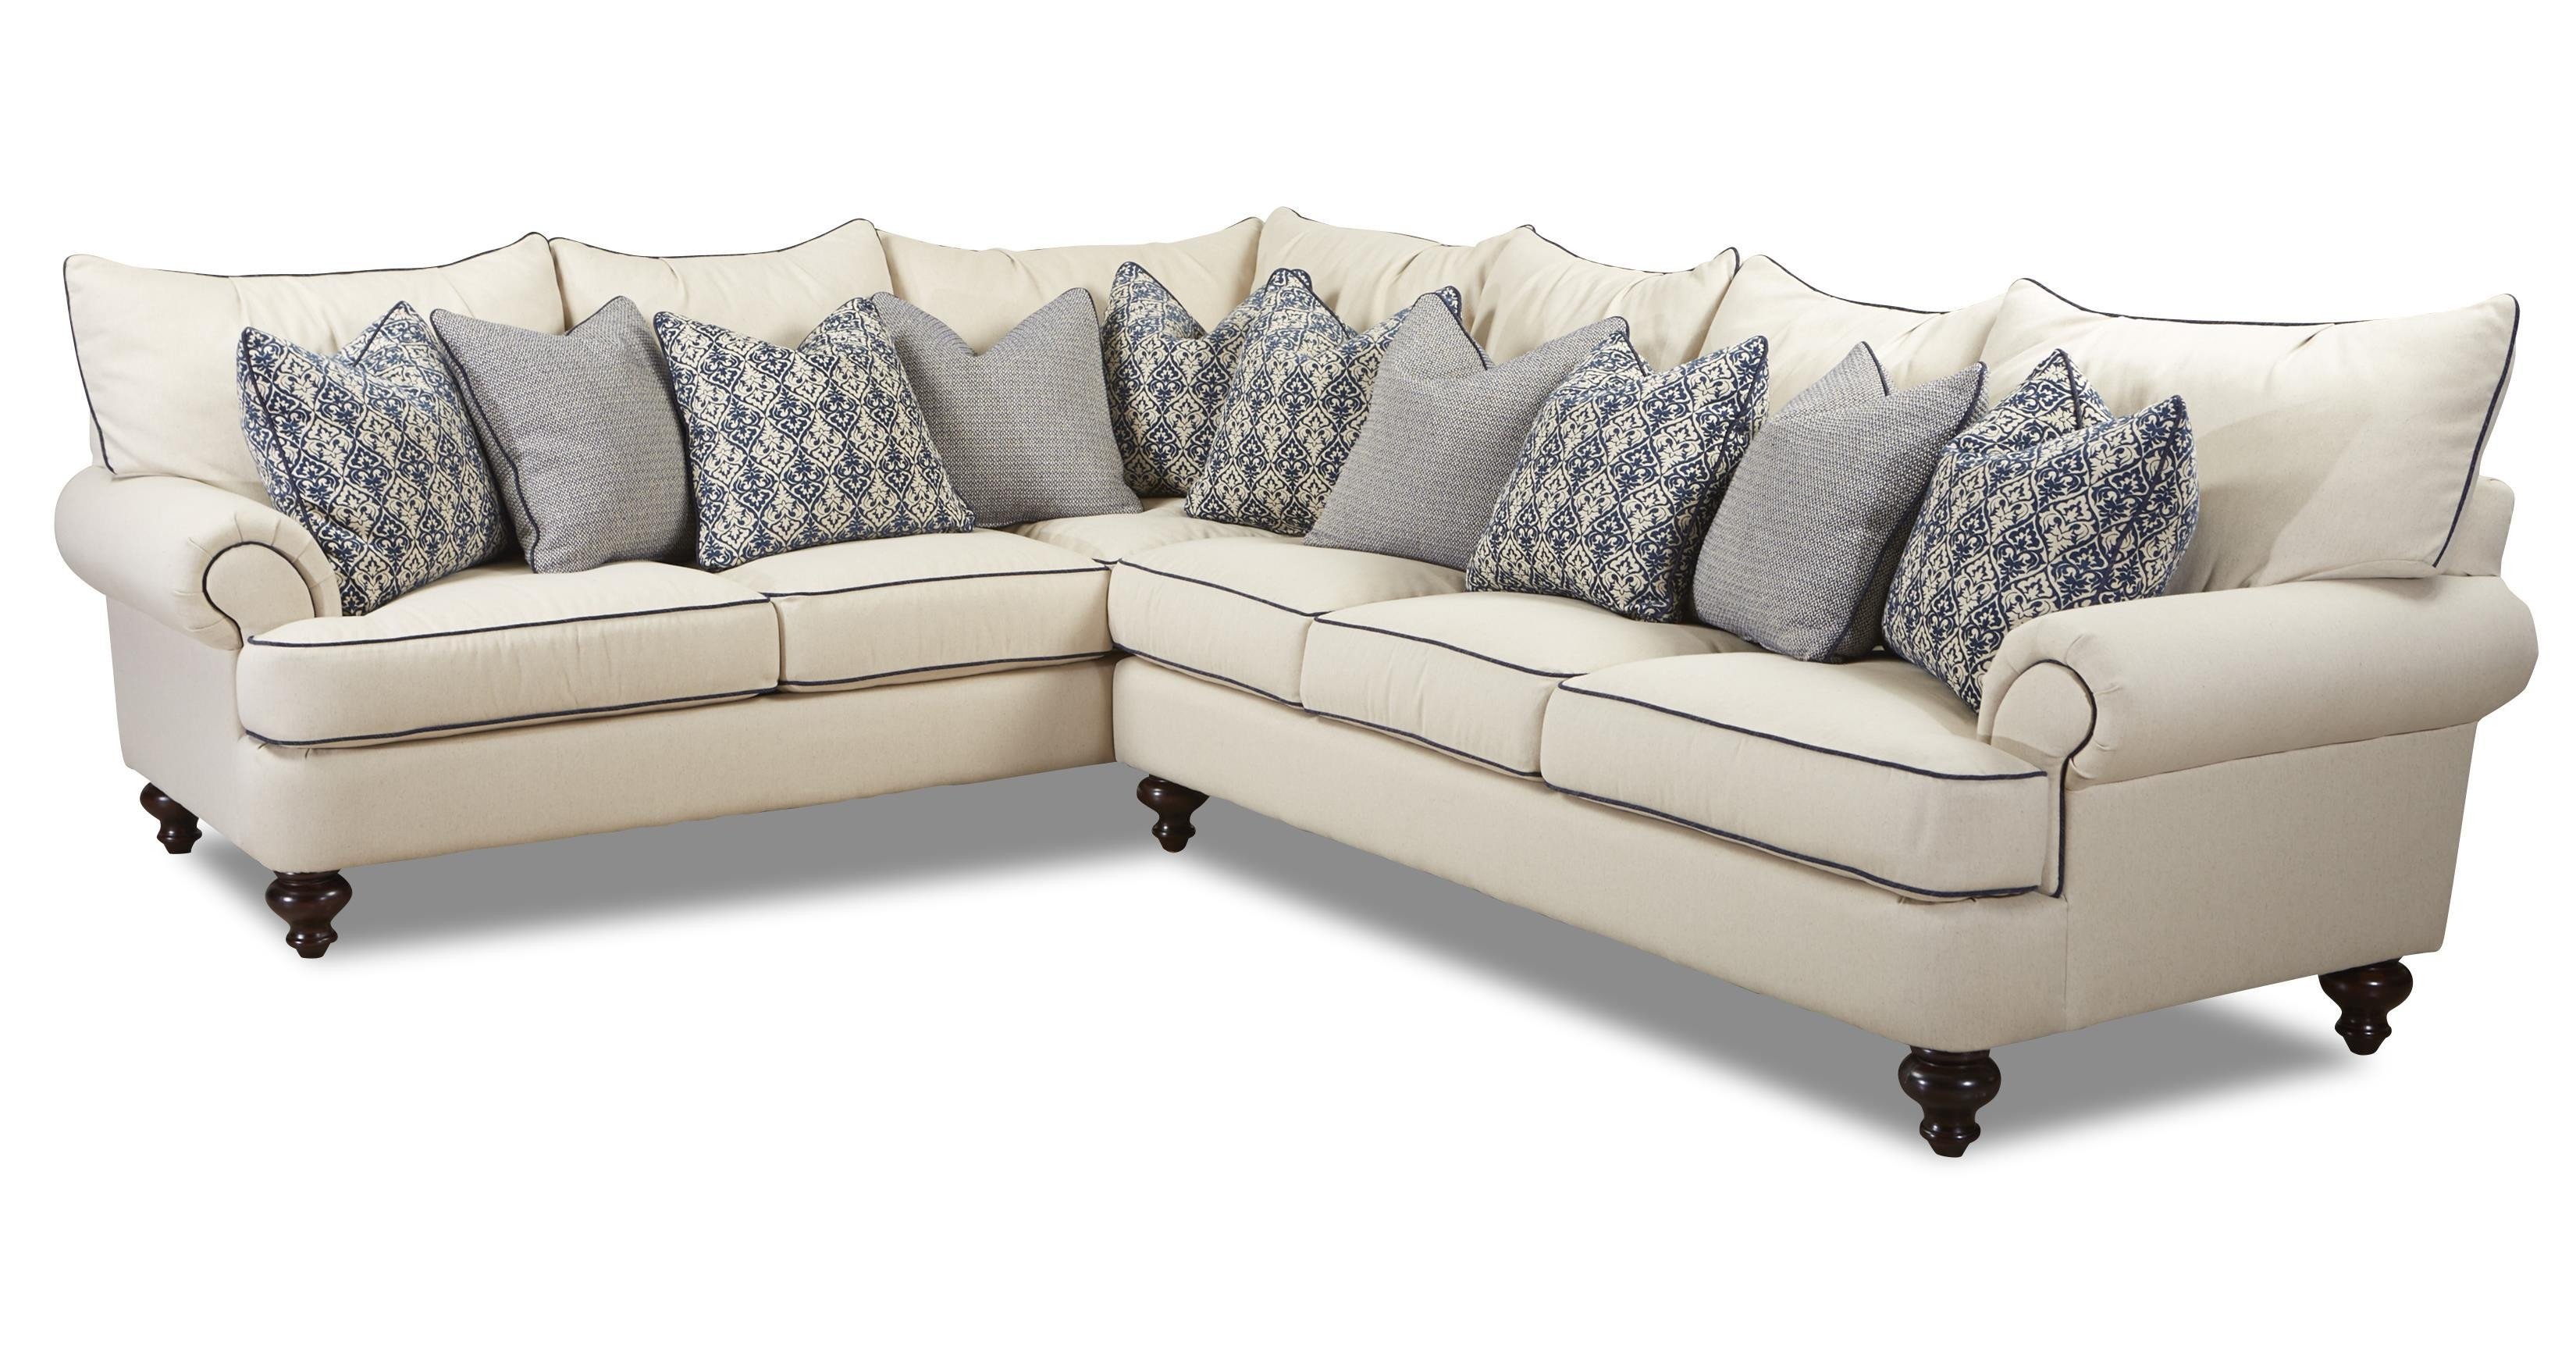 Best ideas about Shabby Chic Loveseat . Save or Pin 20 Choices of Shabby Chic Sectional Sofas Now.